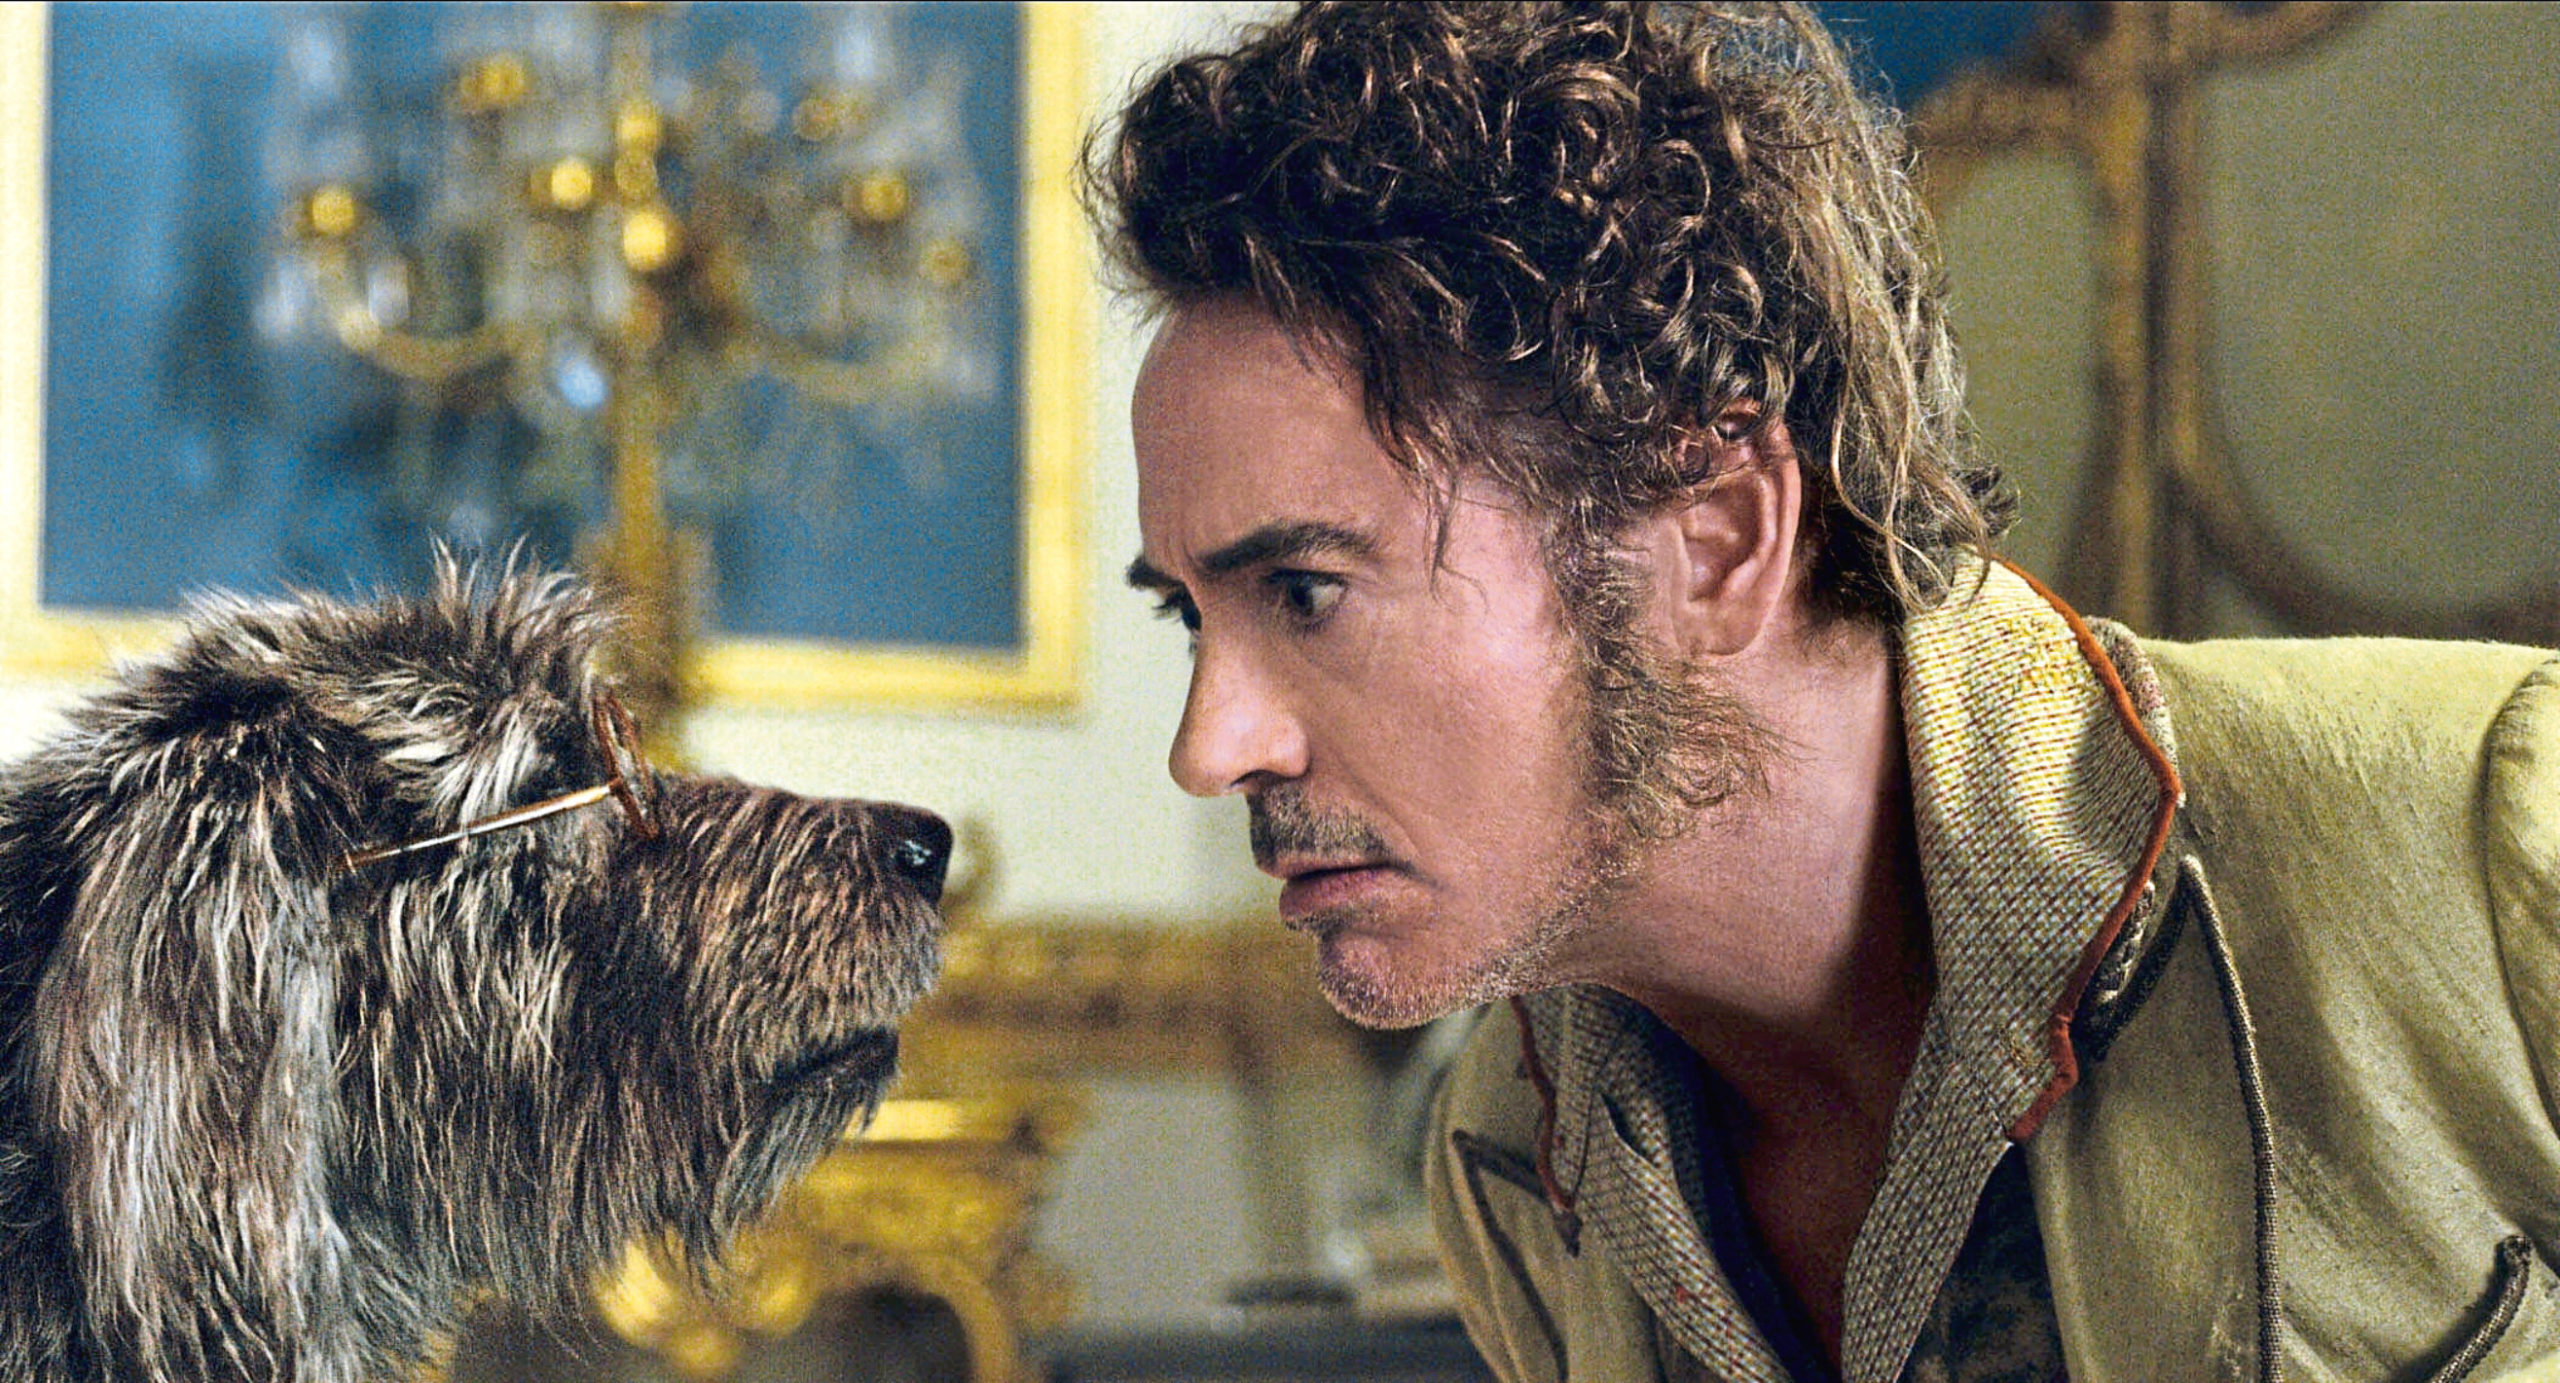 Robert Downey Jr, famous for playing Iron Man and twice nominated for an Academy Award, is starring in Dolittle